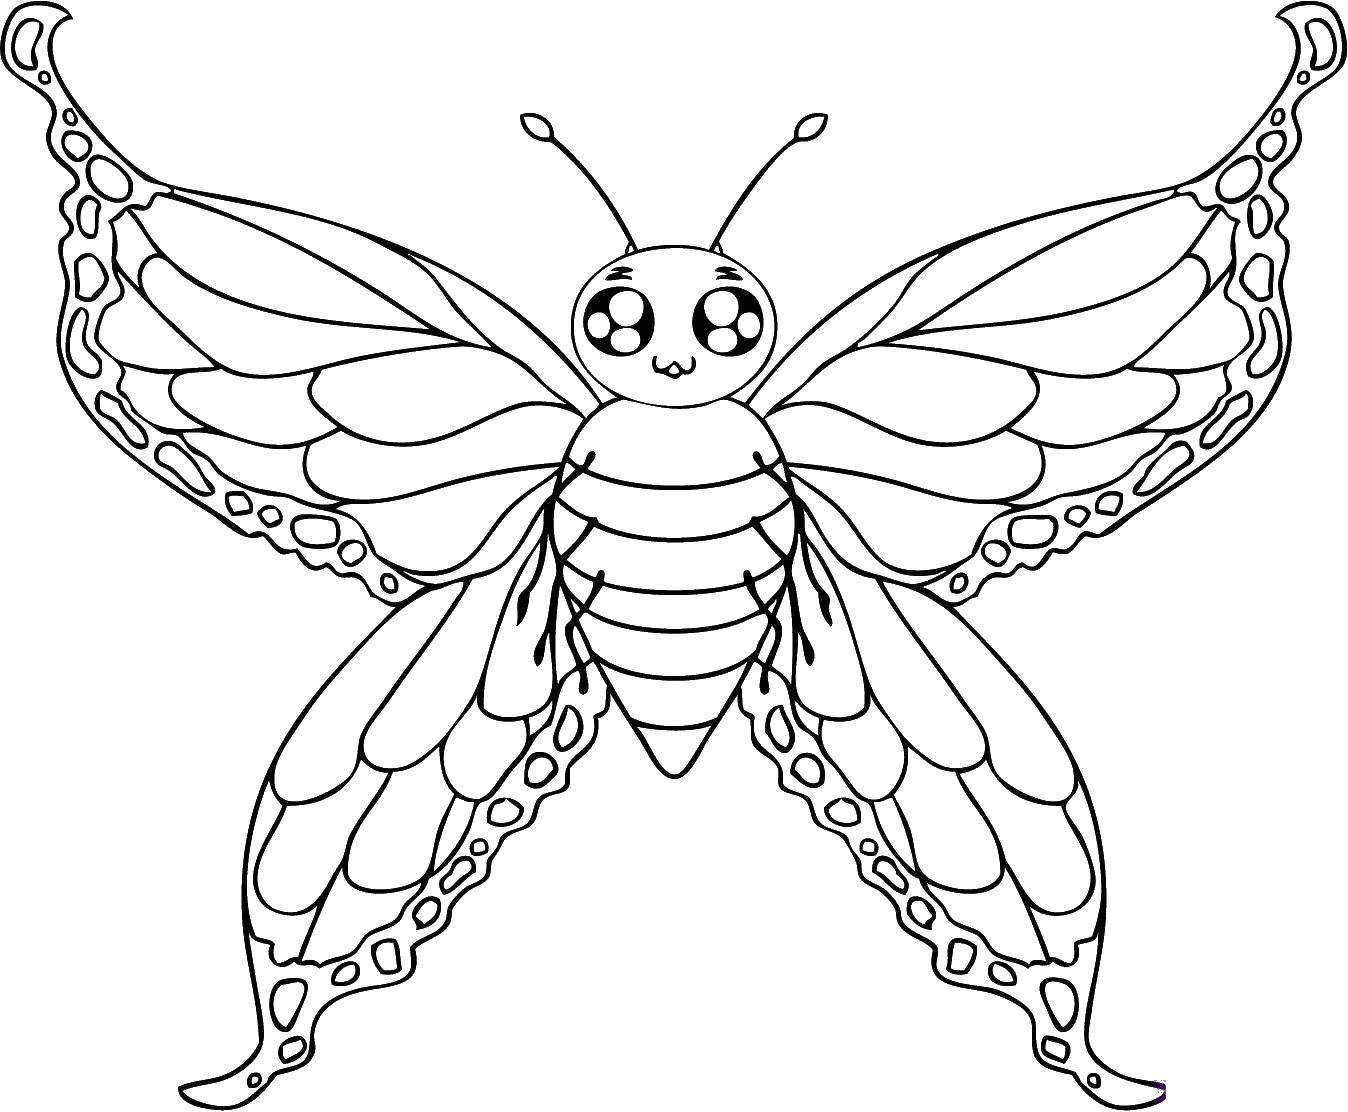 Coloring sheet butterfly Download The alphabet, letters, words.  Print ,ABCs ,